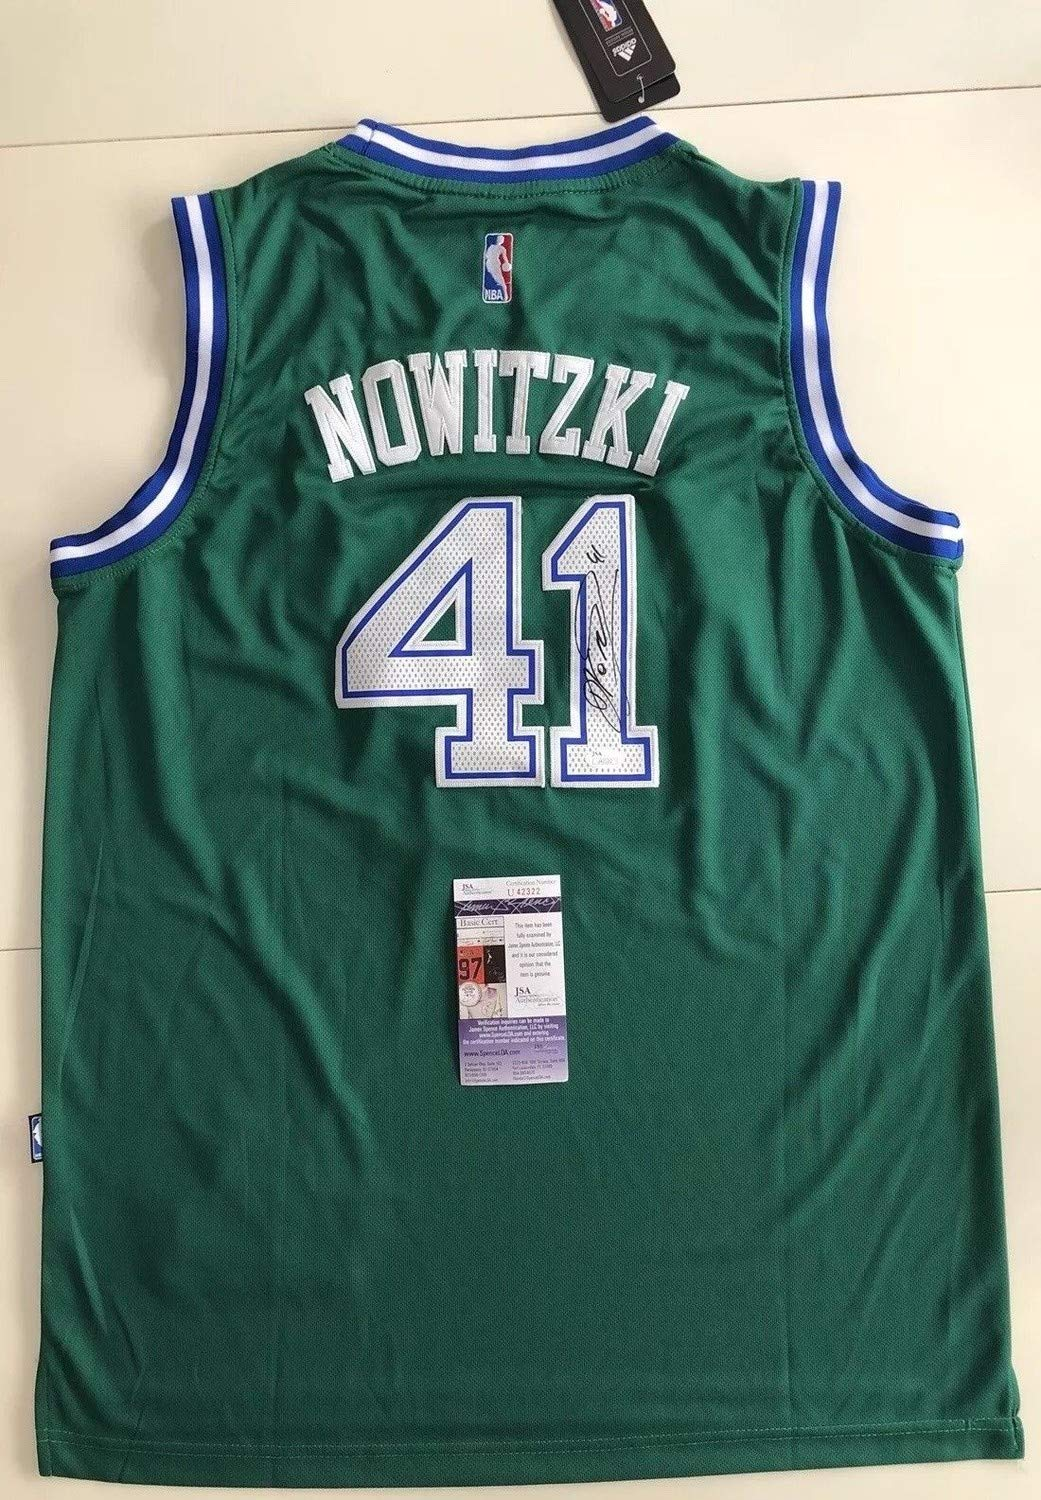 42e7a11d1 Dirk Nowitzki Autographed Signed Dallas Mavericks Jersey Memorabilia JSA  COA  41 Nba All Star Germany at Amazon s Sports Collectibles Store